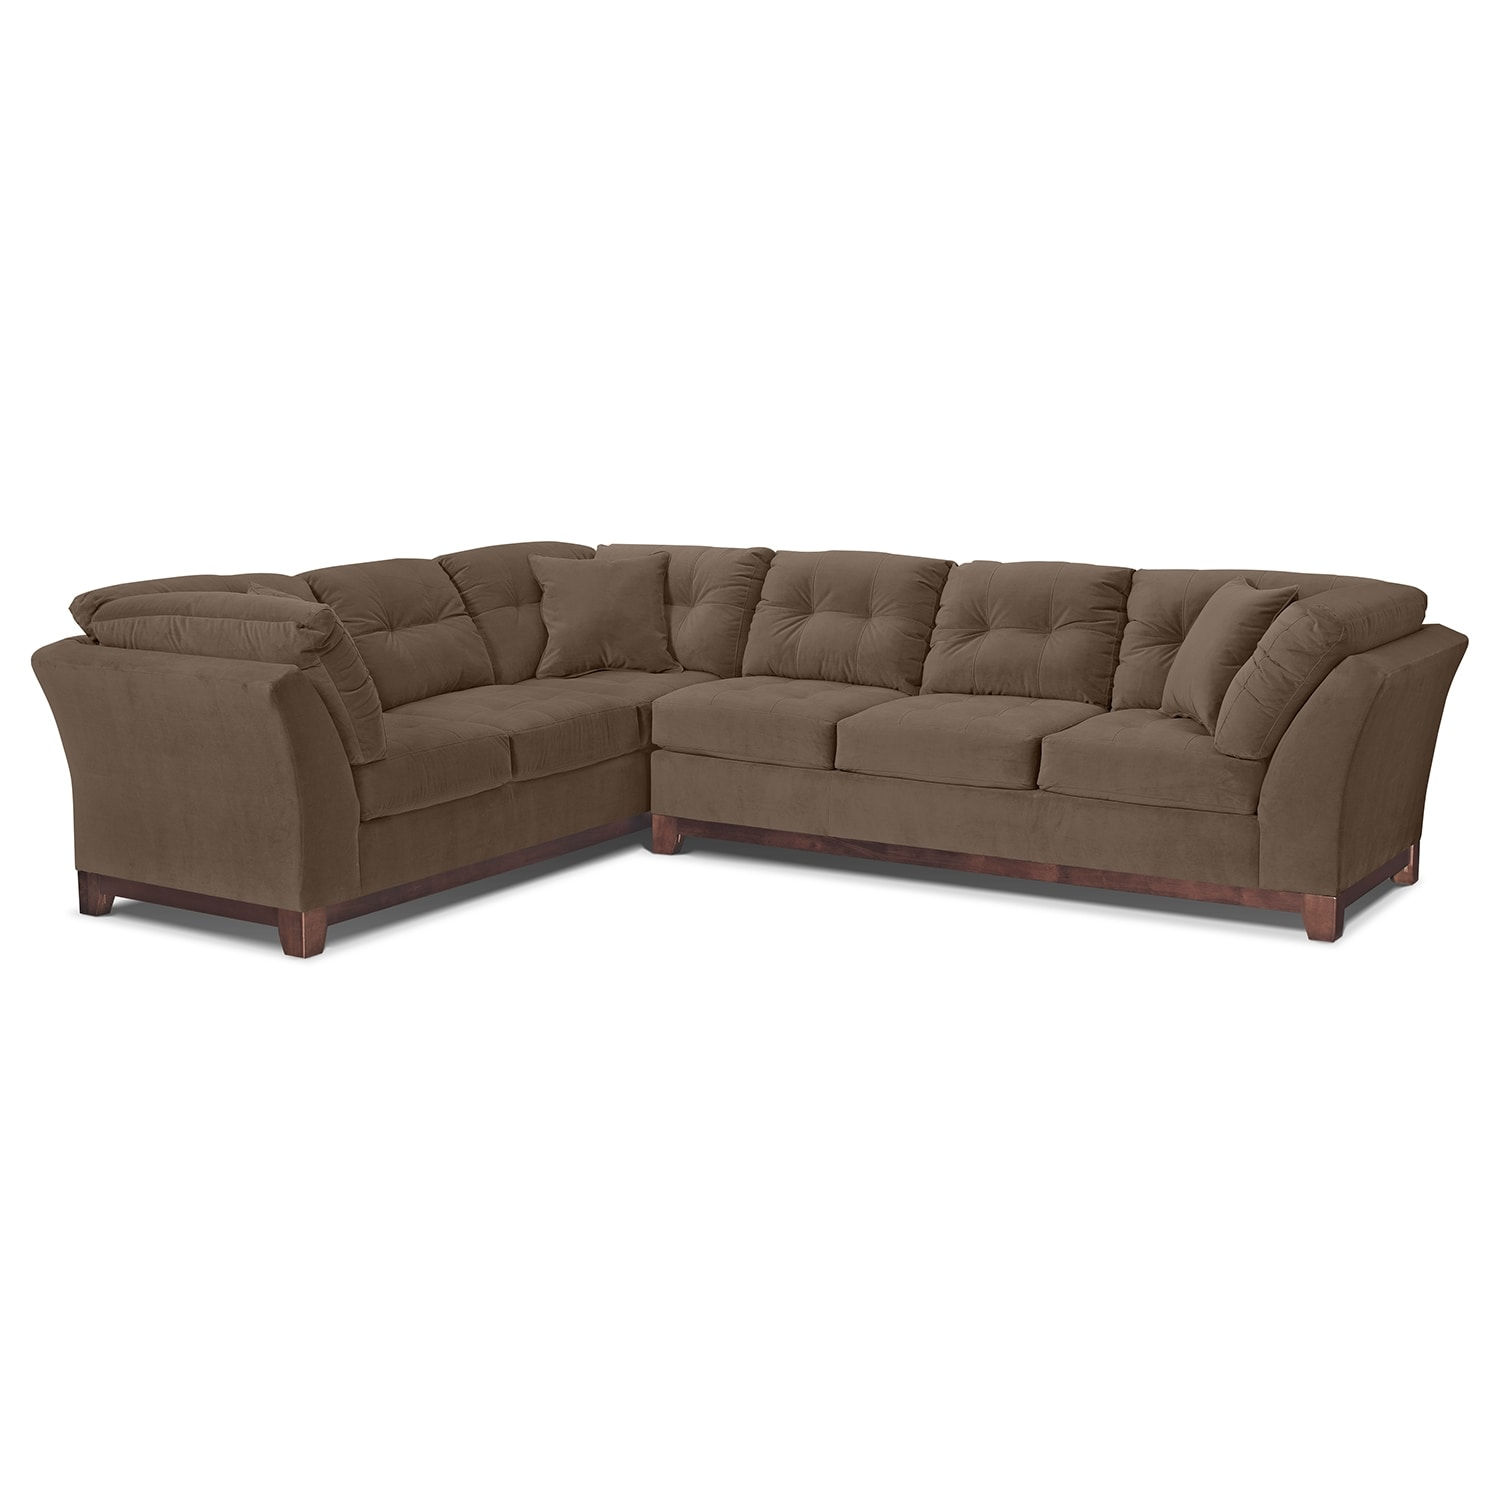 Solace Cocoa Ii Upholstery 2 Pc Sectional Value City Furniture